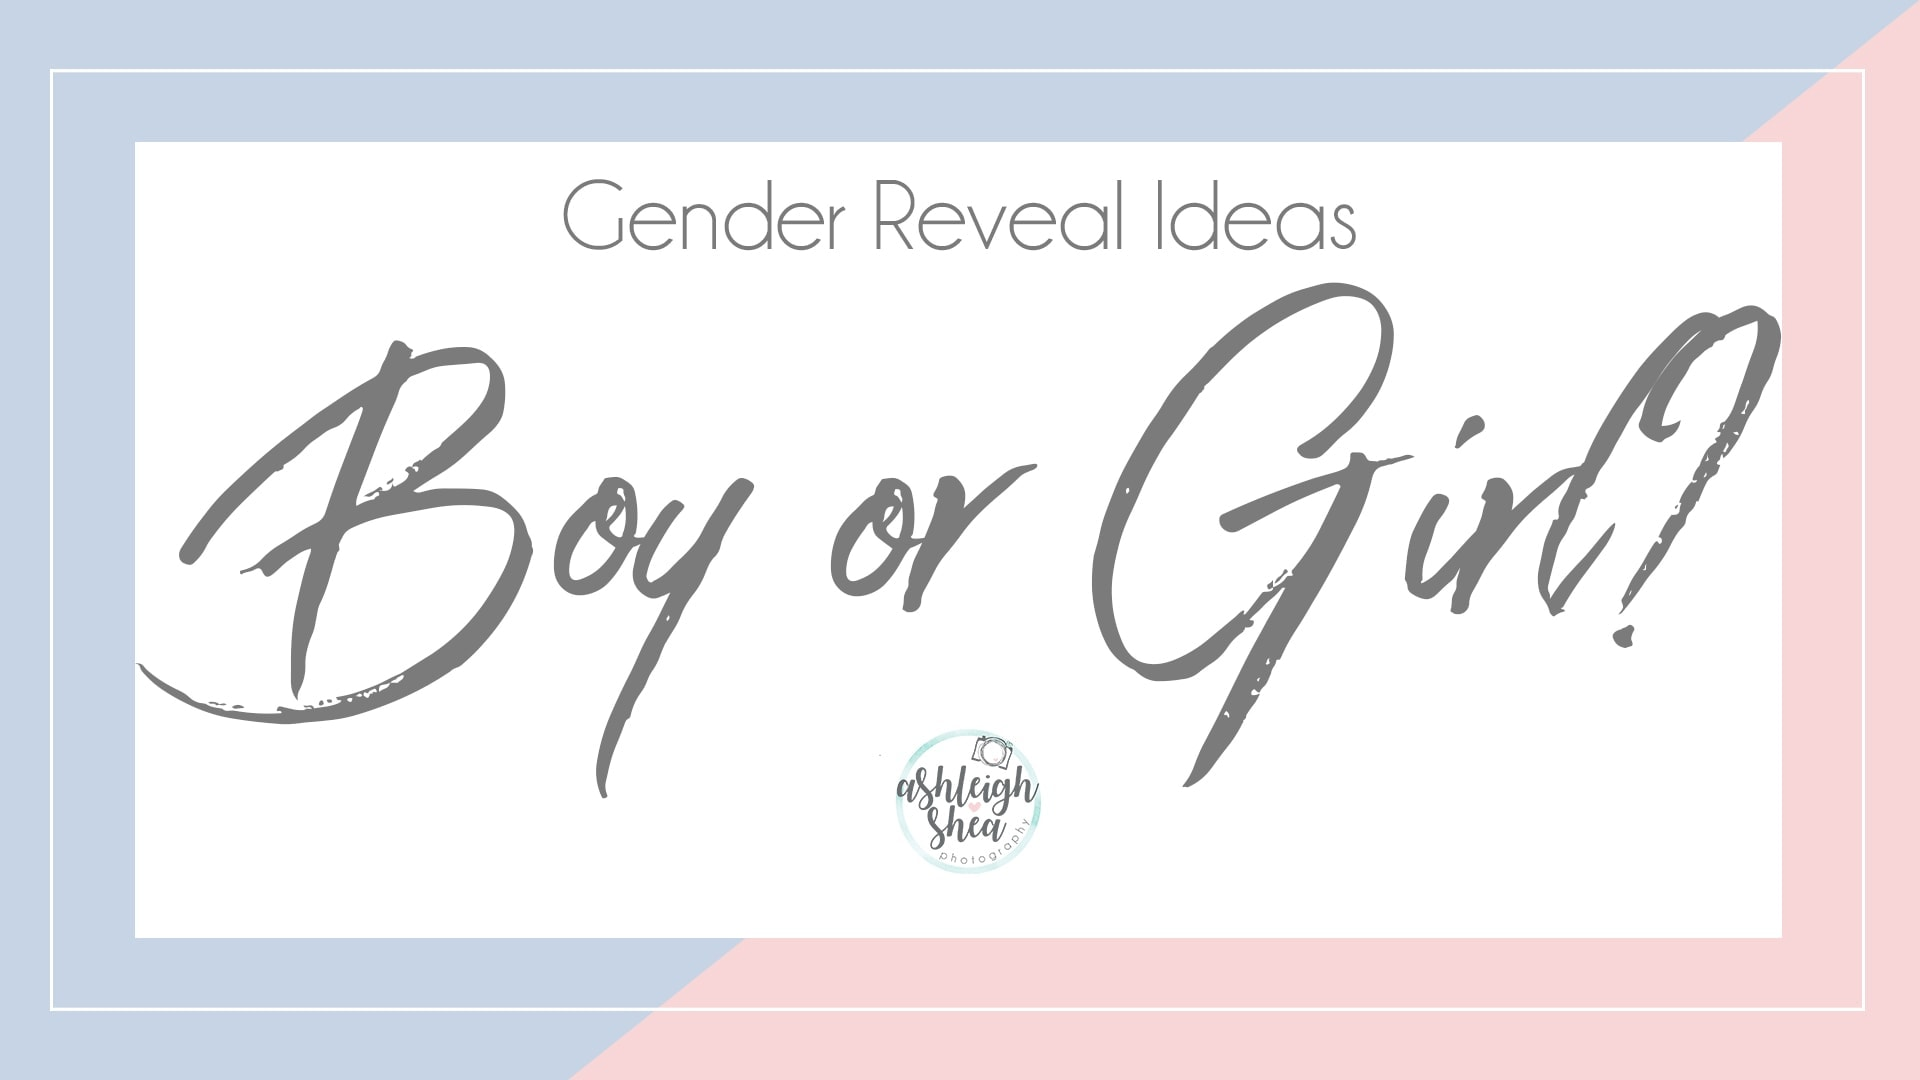 gender reveal, boy or girl, ashleigh shea photography, baby shower